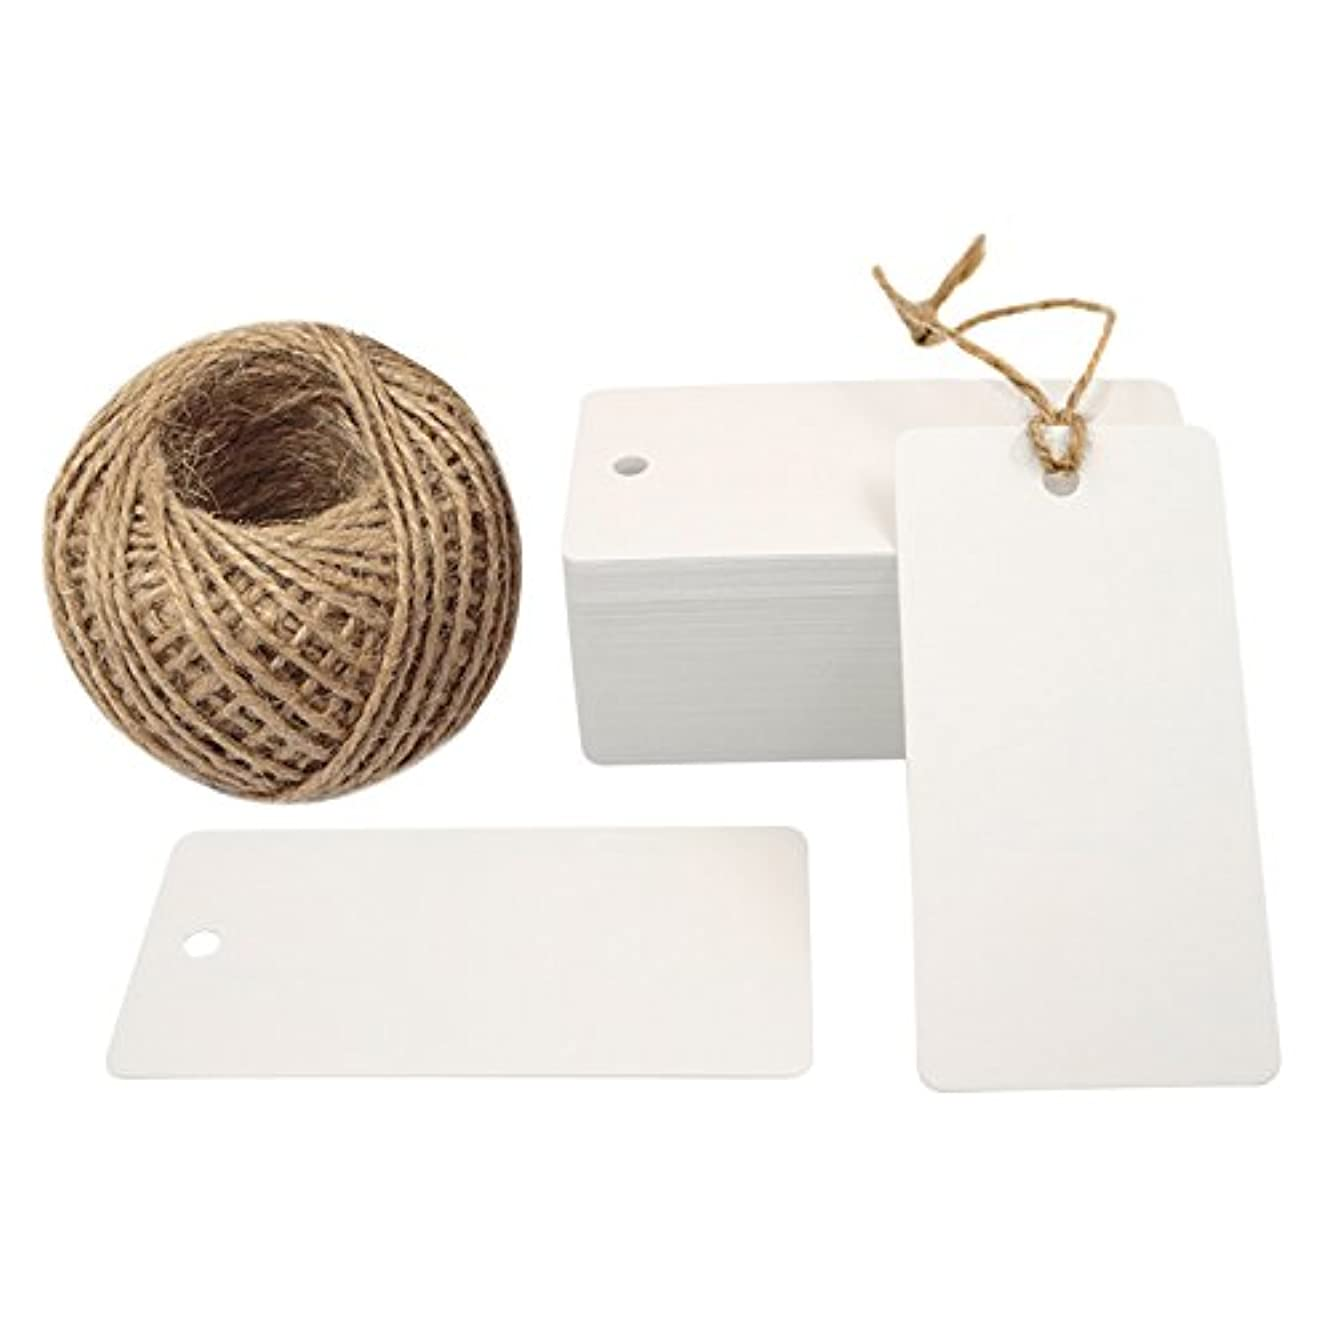 Kraft Gift Tags,100 PCS White Kraft Paper Gift Tag with 100 Feet Jute Twine String, Rectangle Christmas Gift Tags 3.5'' x 1.7'' frvjwuqvy828279